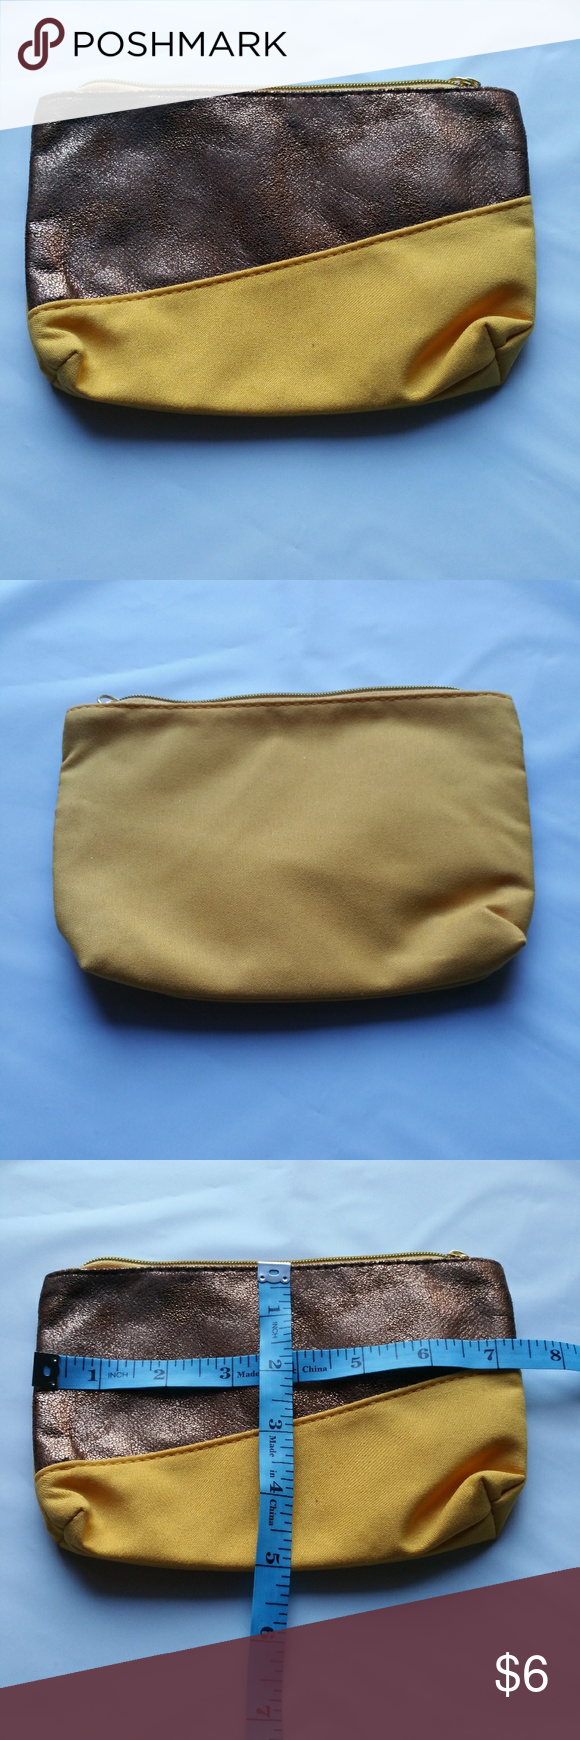 IPSY Cosmetic Case/Makeup Bag, Copper Colorblock Ipsy